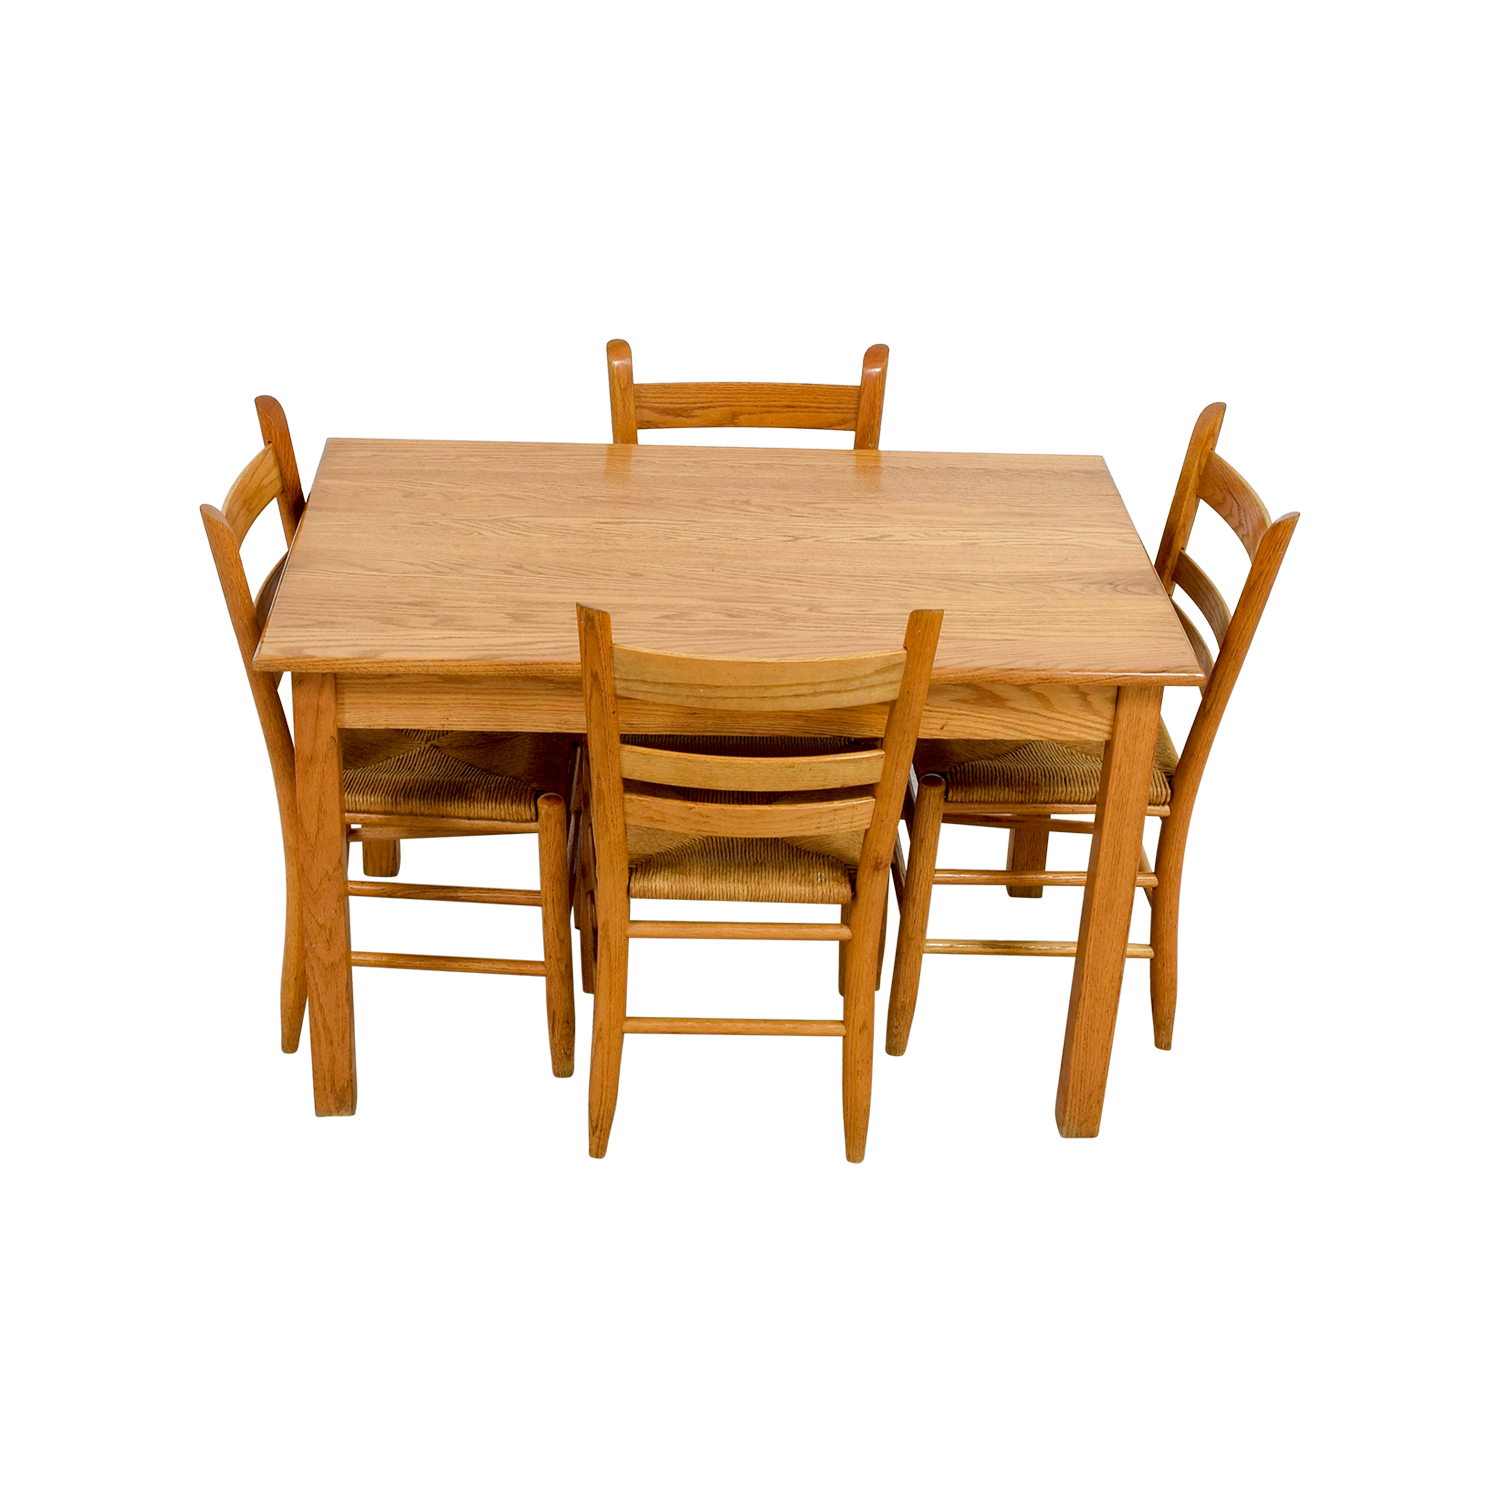 Crate & Barrel Crate & Barrel Rectangle Maple Wooden Dining Set dimensions